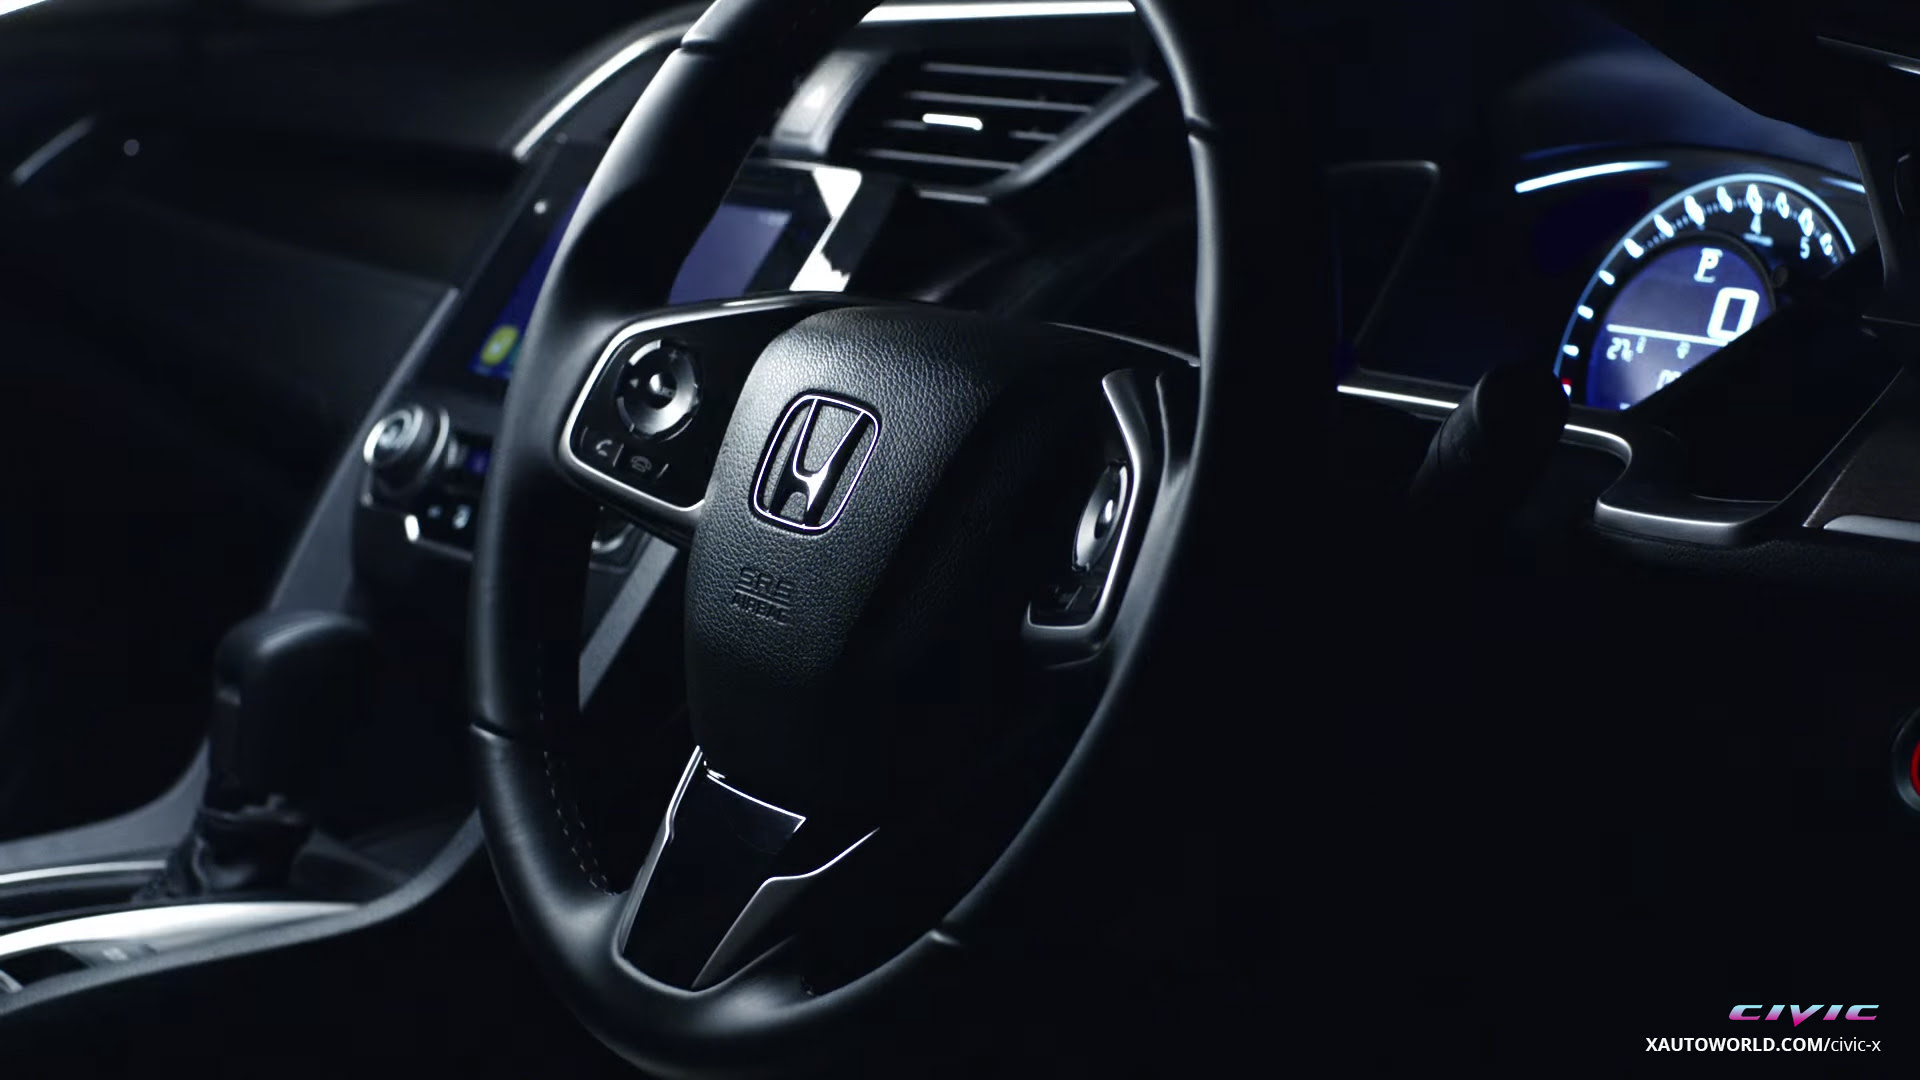 2016 Civic HD Wallpapers - X Auto